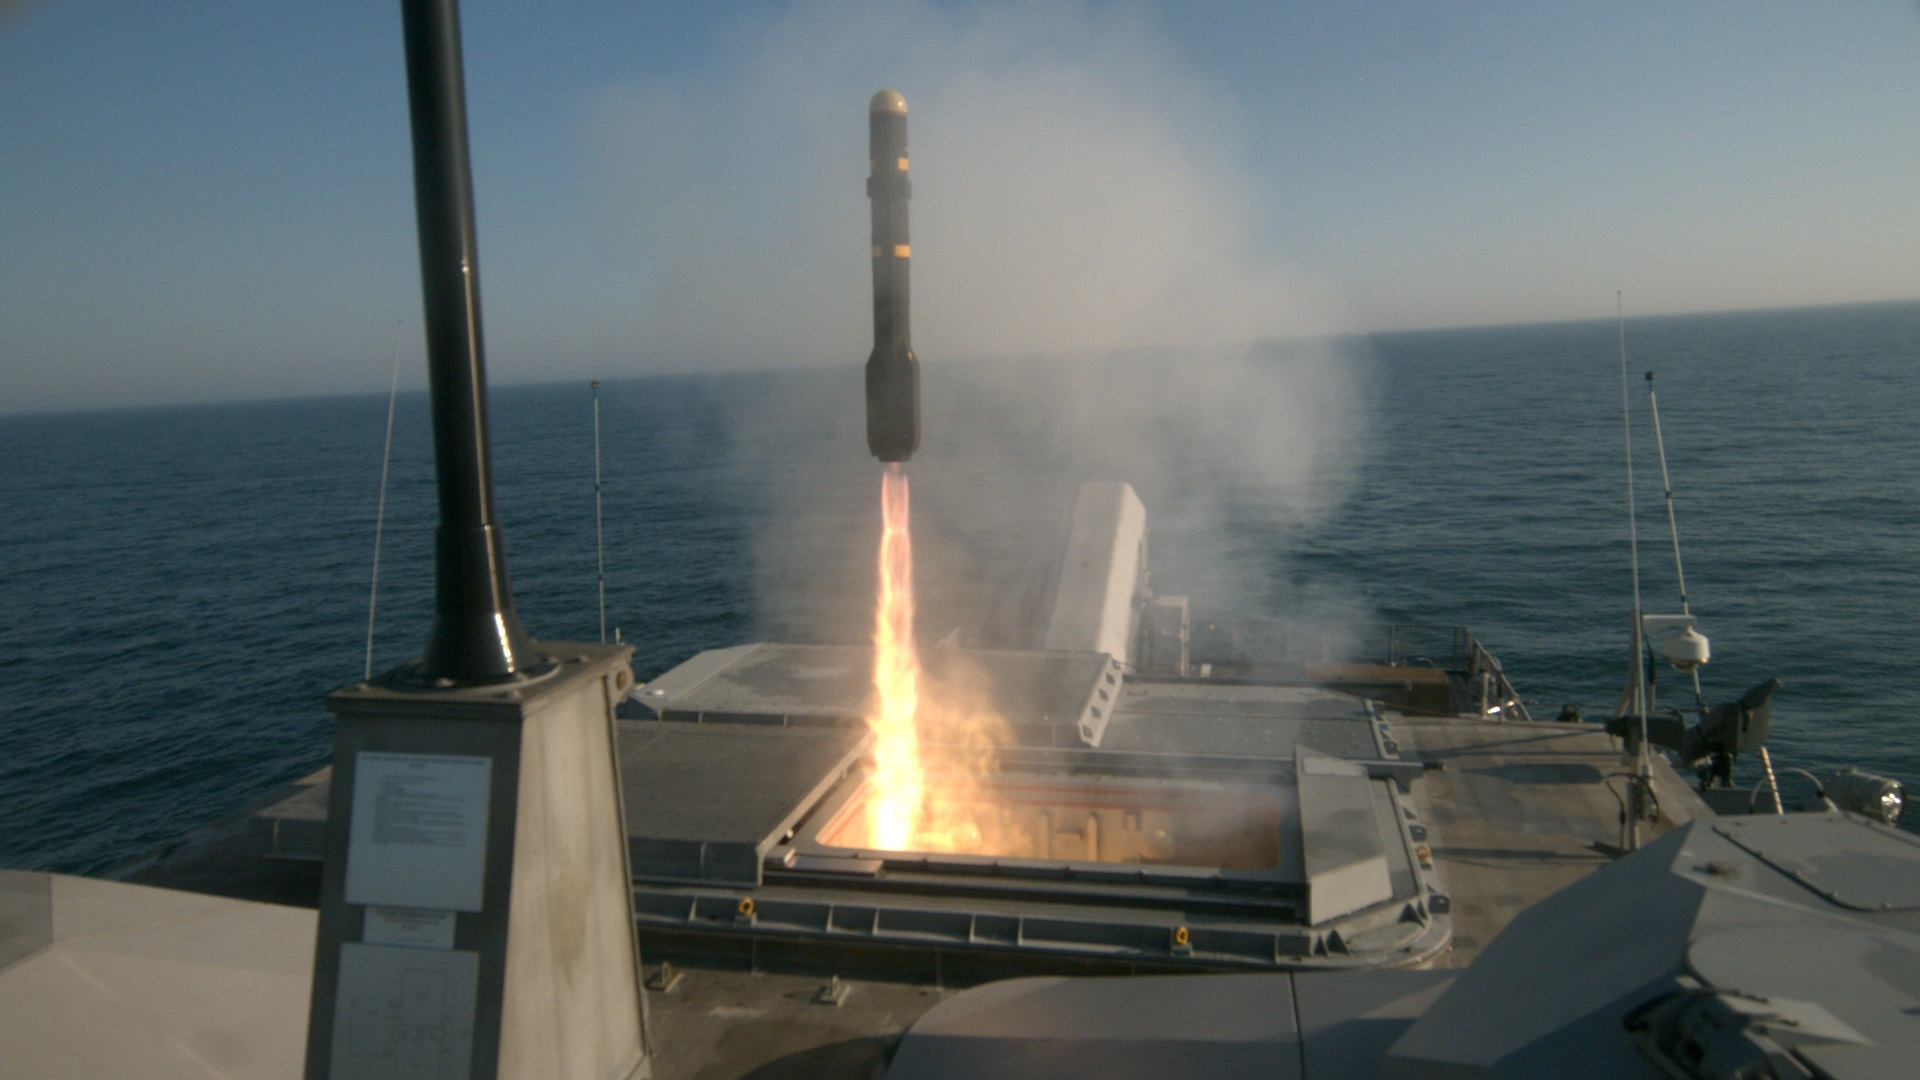 LCS Milwaukee fires Longbow missiles in mission module test